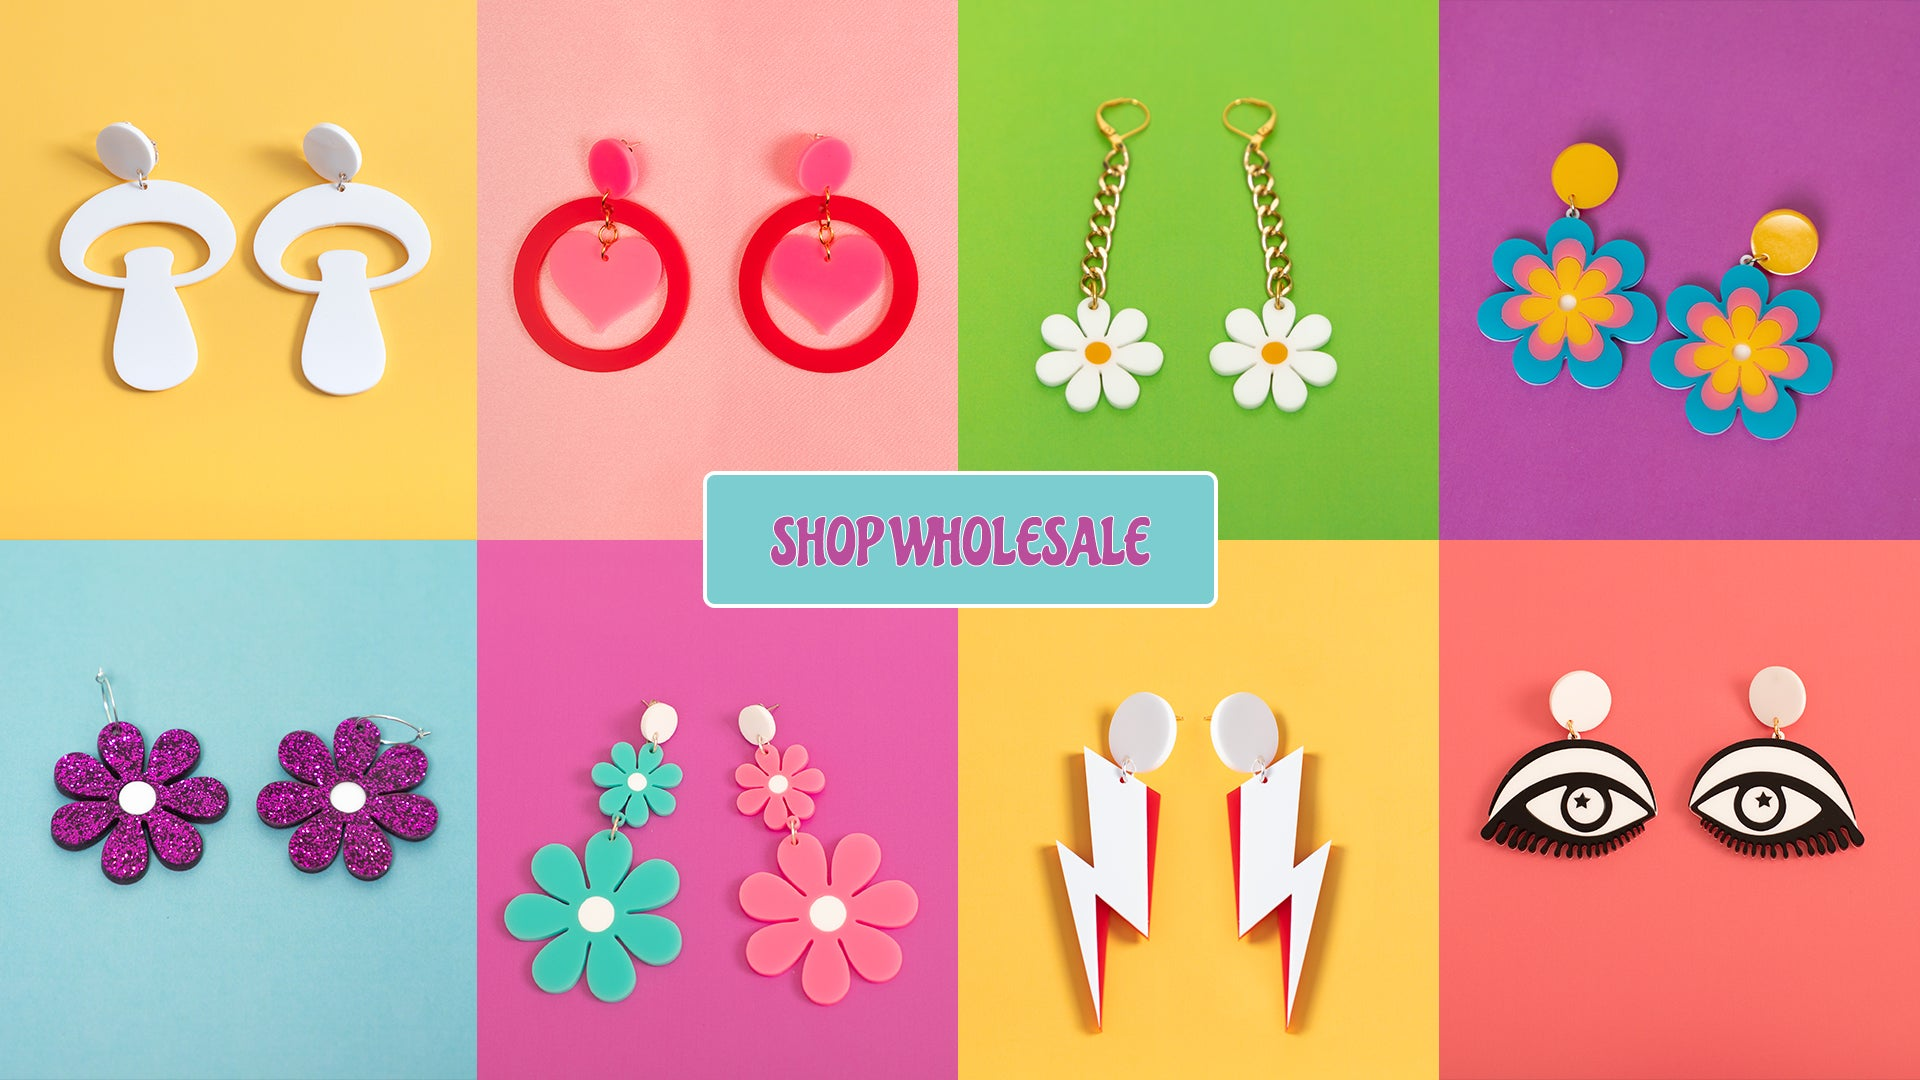 Banner with link to our wholesale page. Features 8 product images, each on a bright colored background. A daisy, a lightning bolt, a mushroom design, and heart designs.